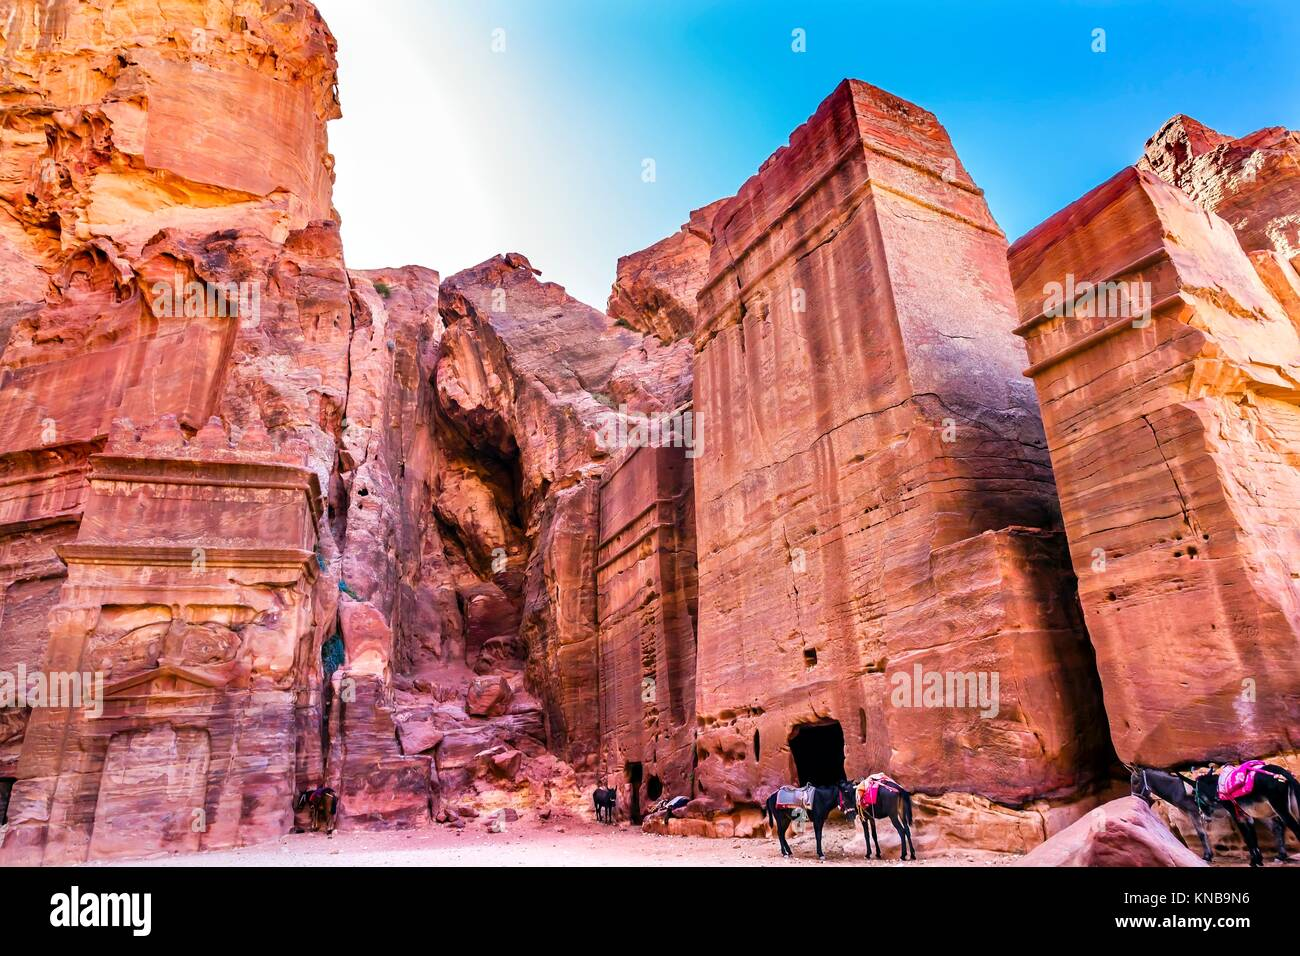 Rose Red Rock Tomb Afternoon Horses Street of Facades Petra Jordan. Built by the Nabataens in 200 BC to 400 AD. - Stock Image